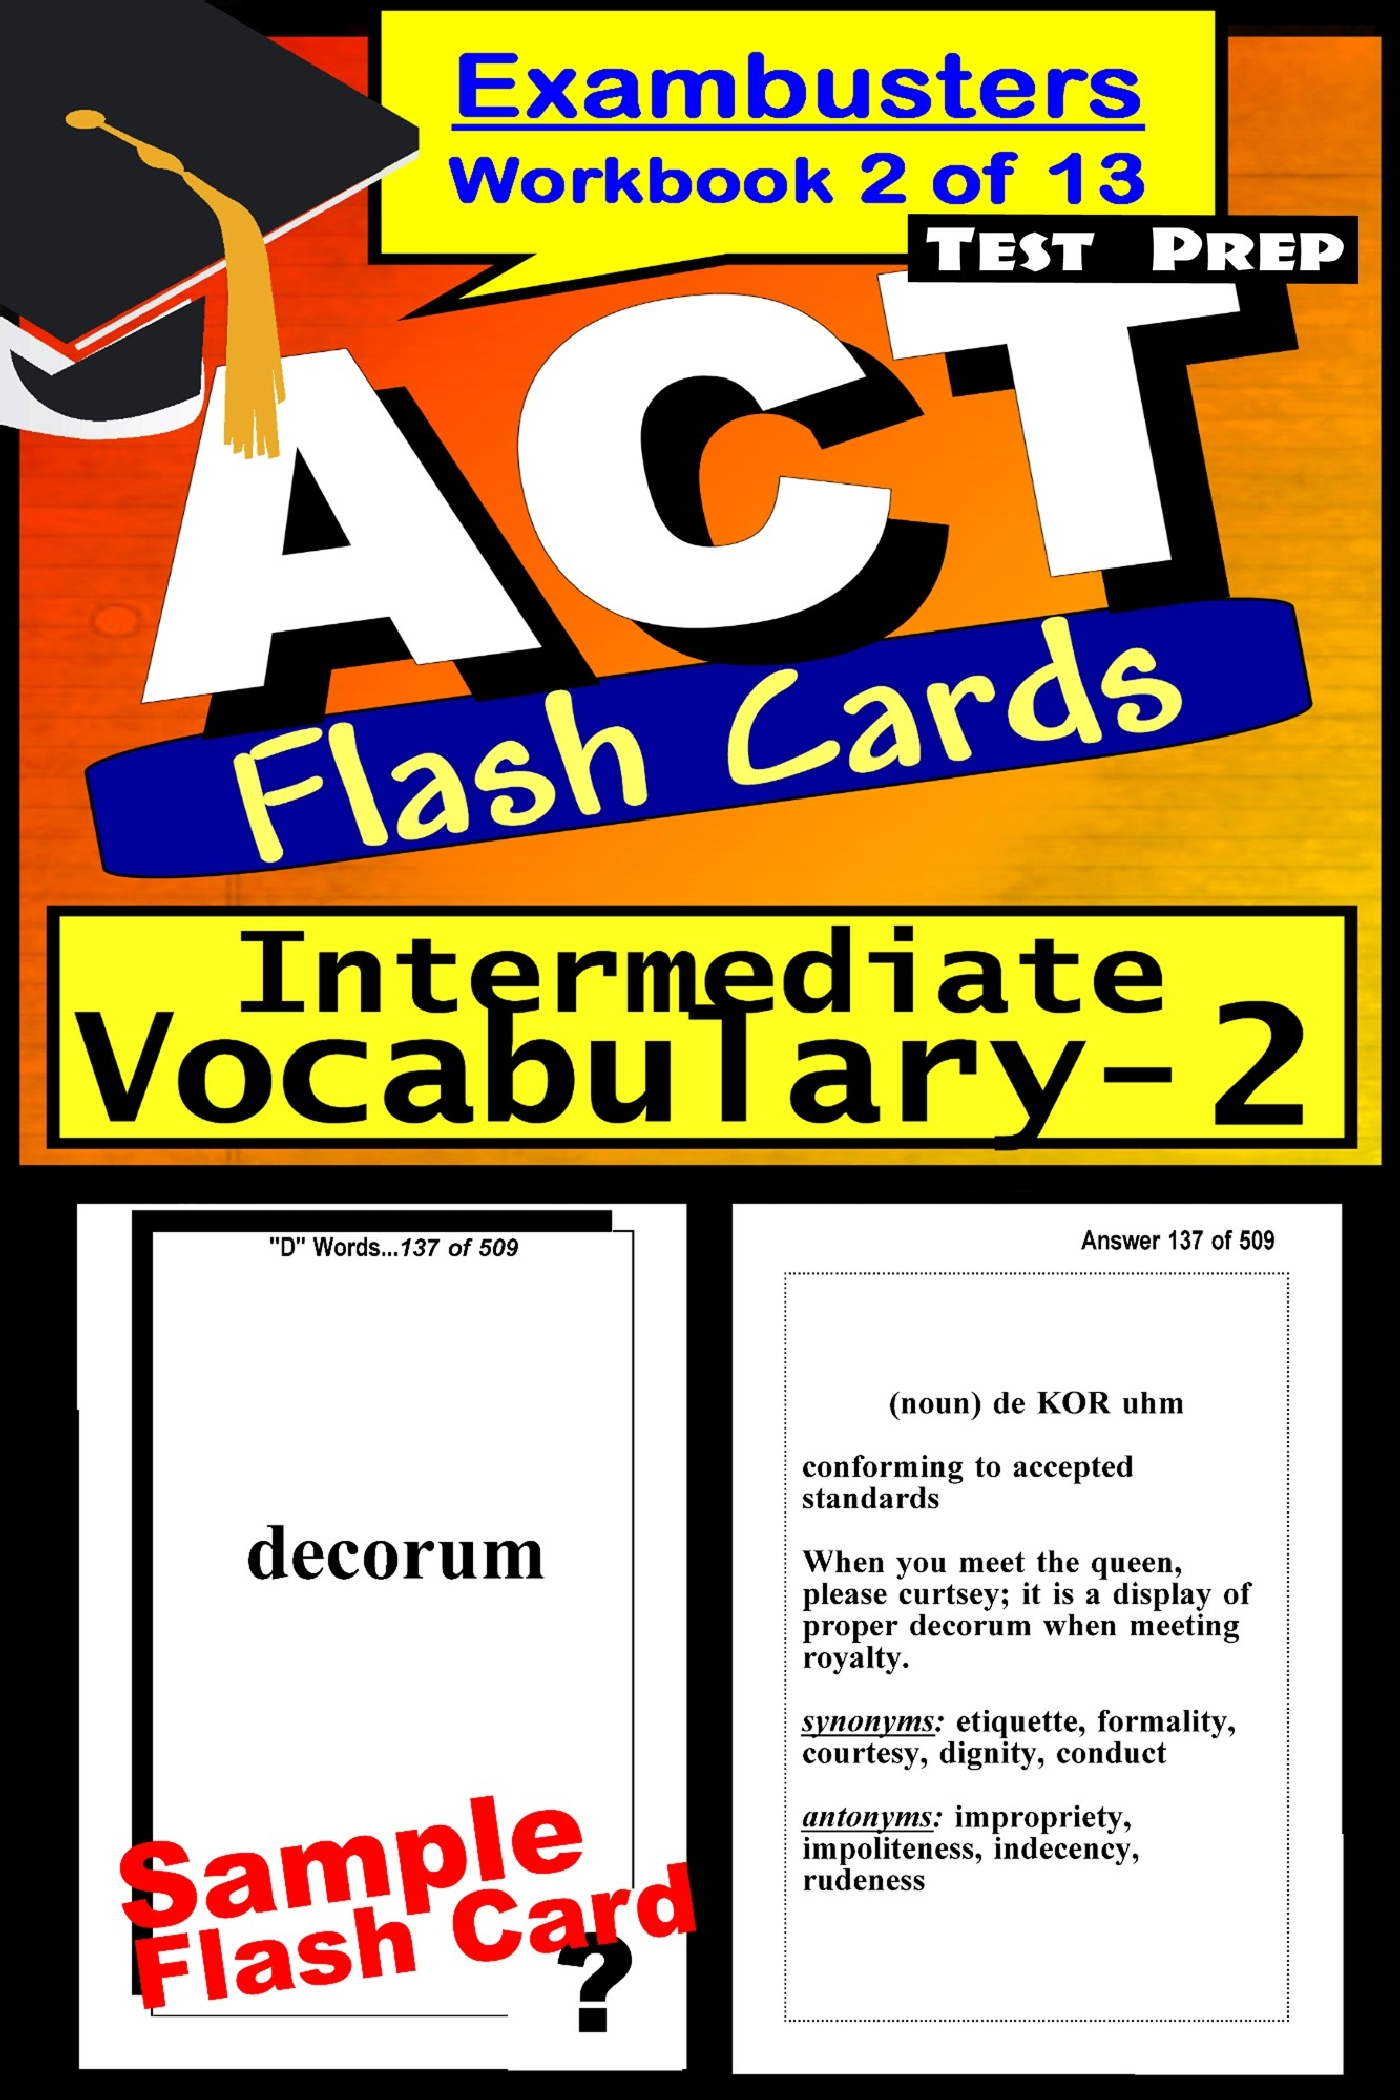 ACT Test Prep Intermediate Vocabulary Review--Exambusters Flash Cards--Workbook 2 of 13: ACT Exam Study Guide